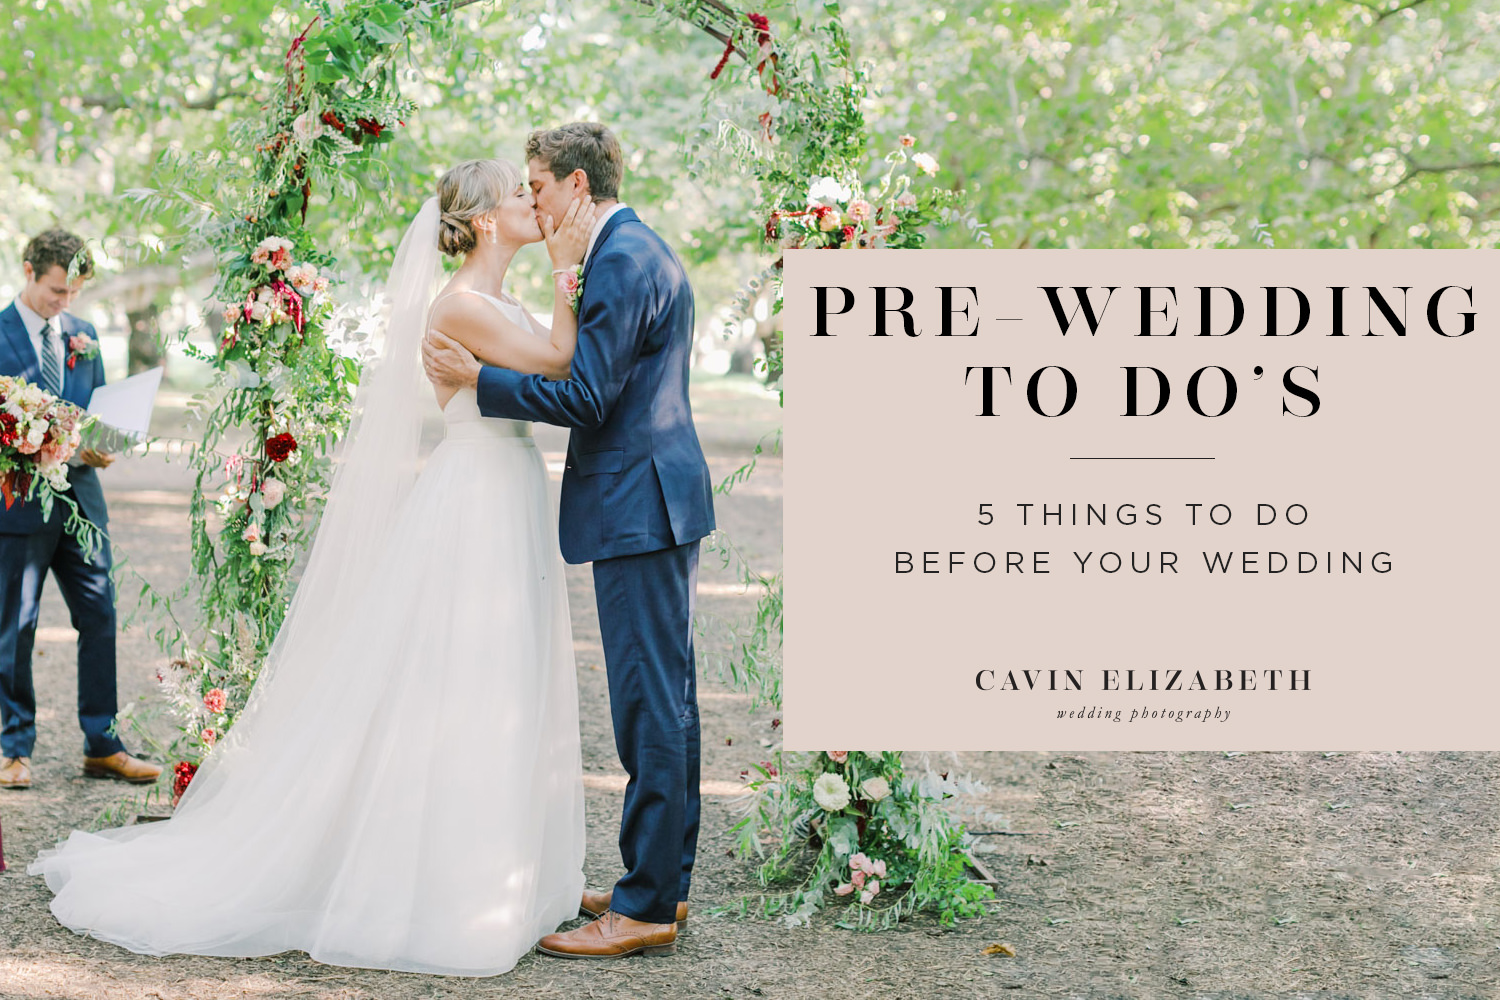 5 Things to Do Before Your Wedding-Wedding Preparation Tips to help ensure you are prepared for the wedding day.